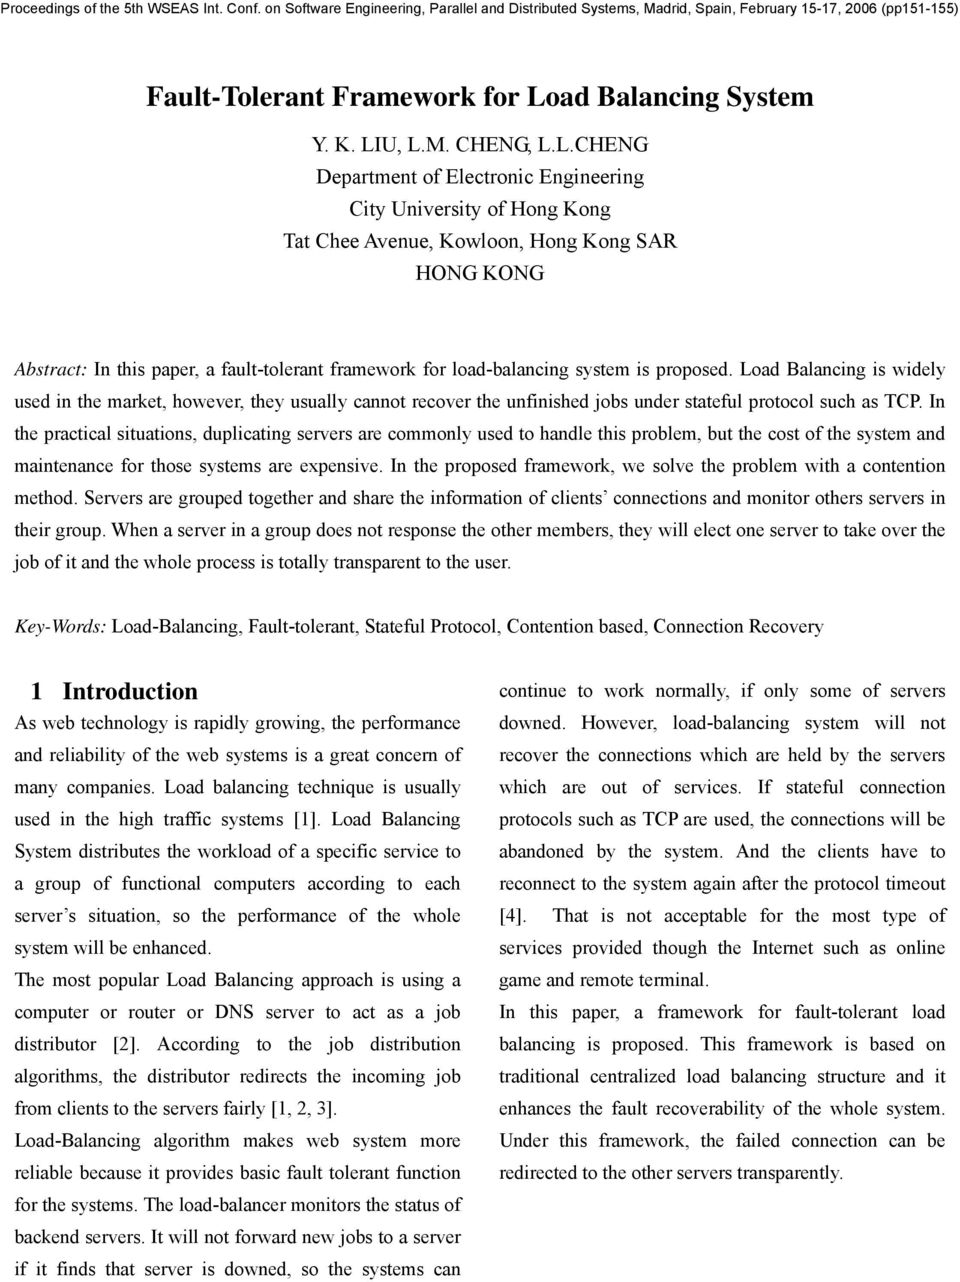 U, L.M. CHENG, L.L.CHENG Department of Electronic Engineering City University of Hong Kong Tat Chee Avenue, Kowloon, Hong Kong SAR HONG KONG Abstract: In this paper, a fault-tolerant framework for